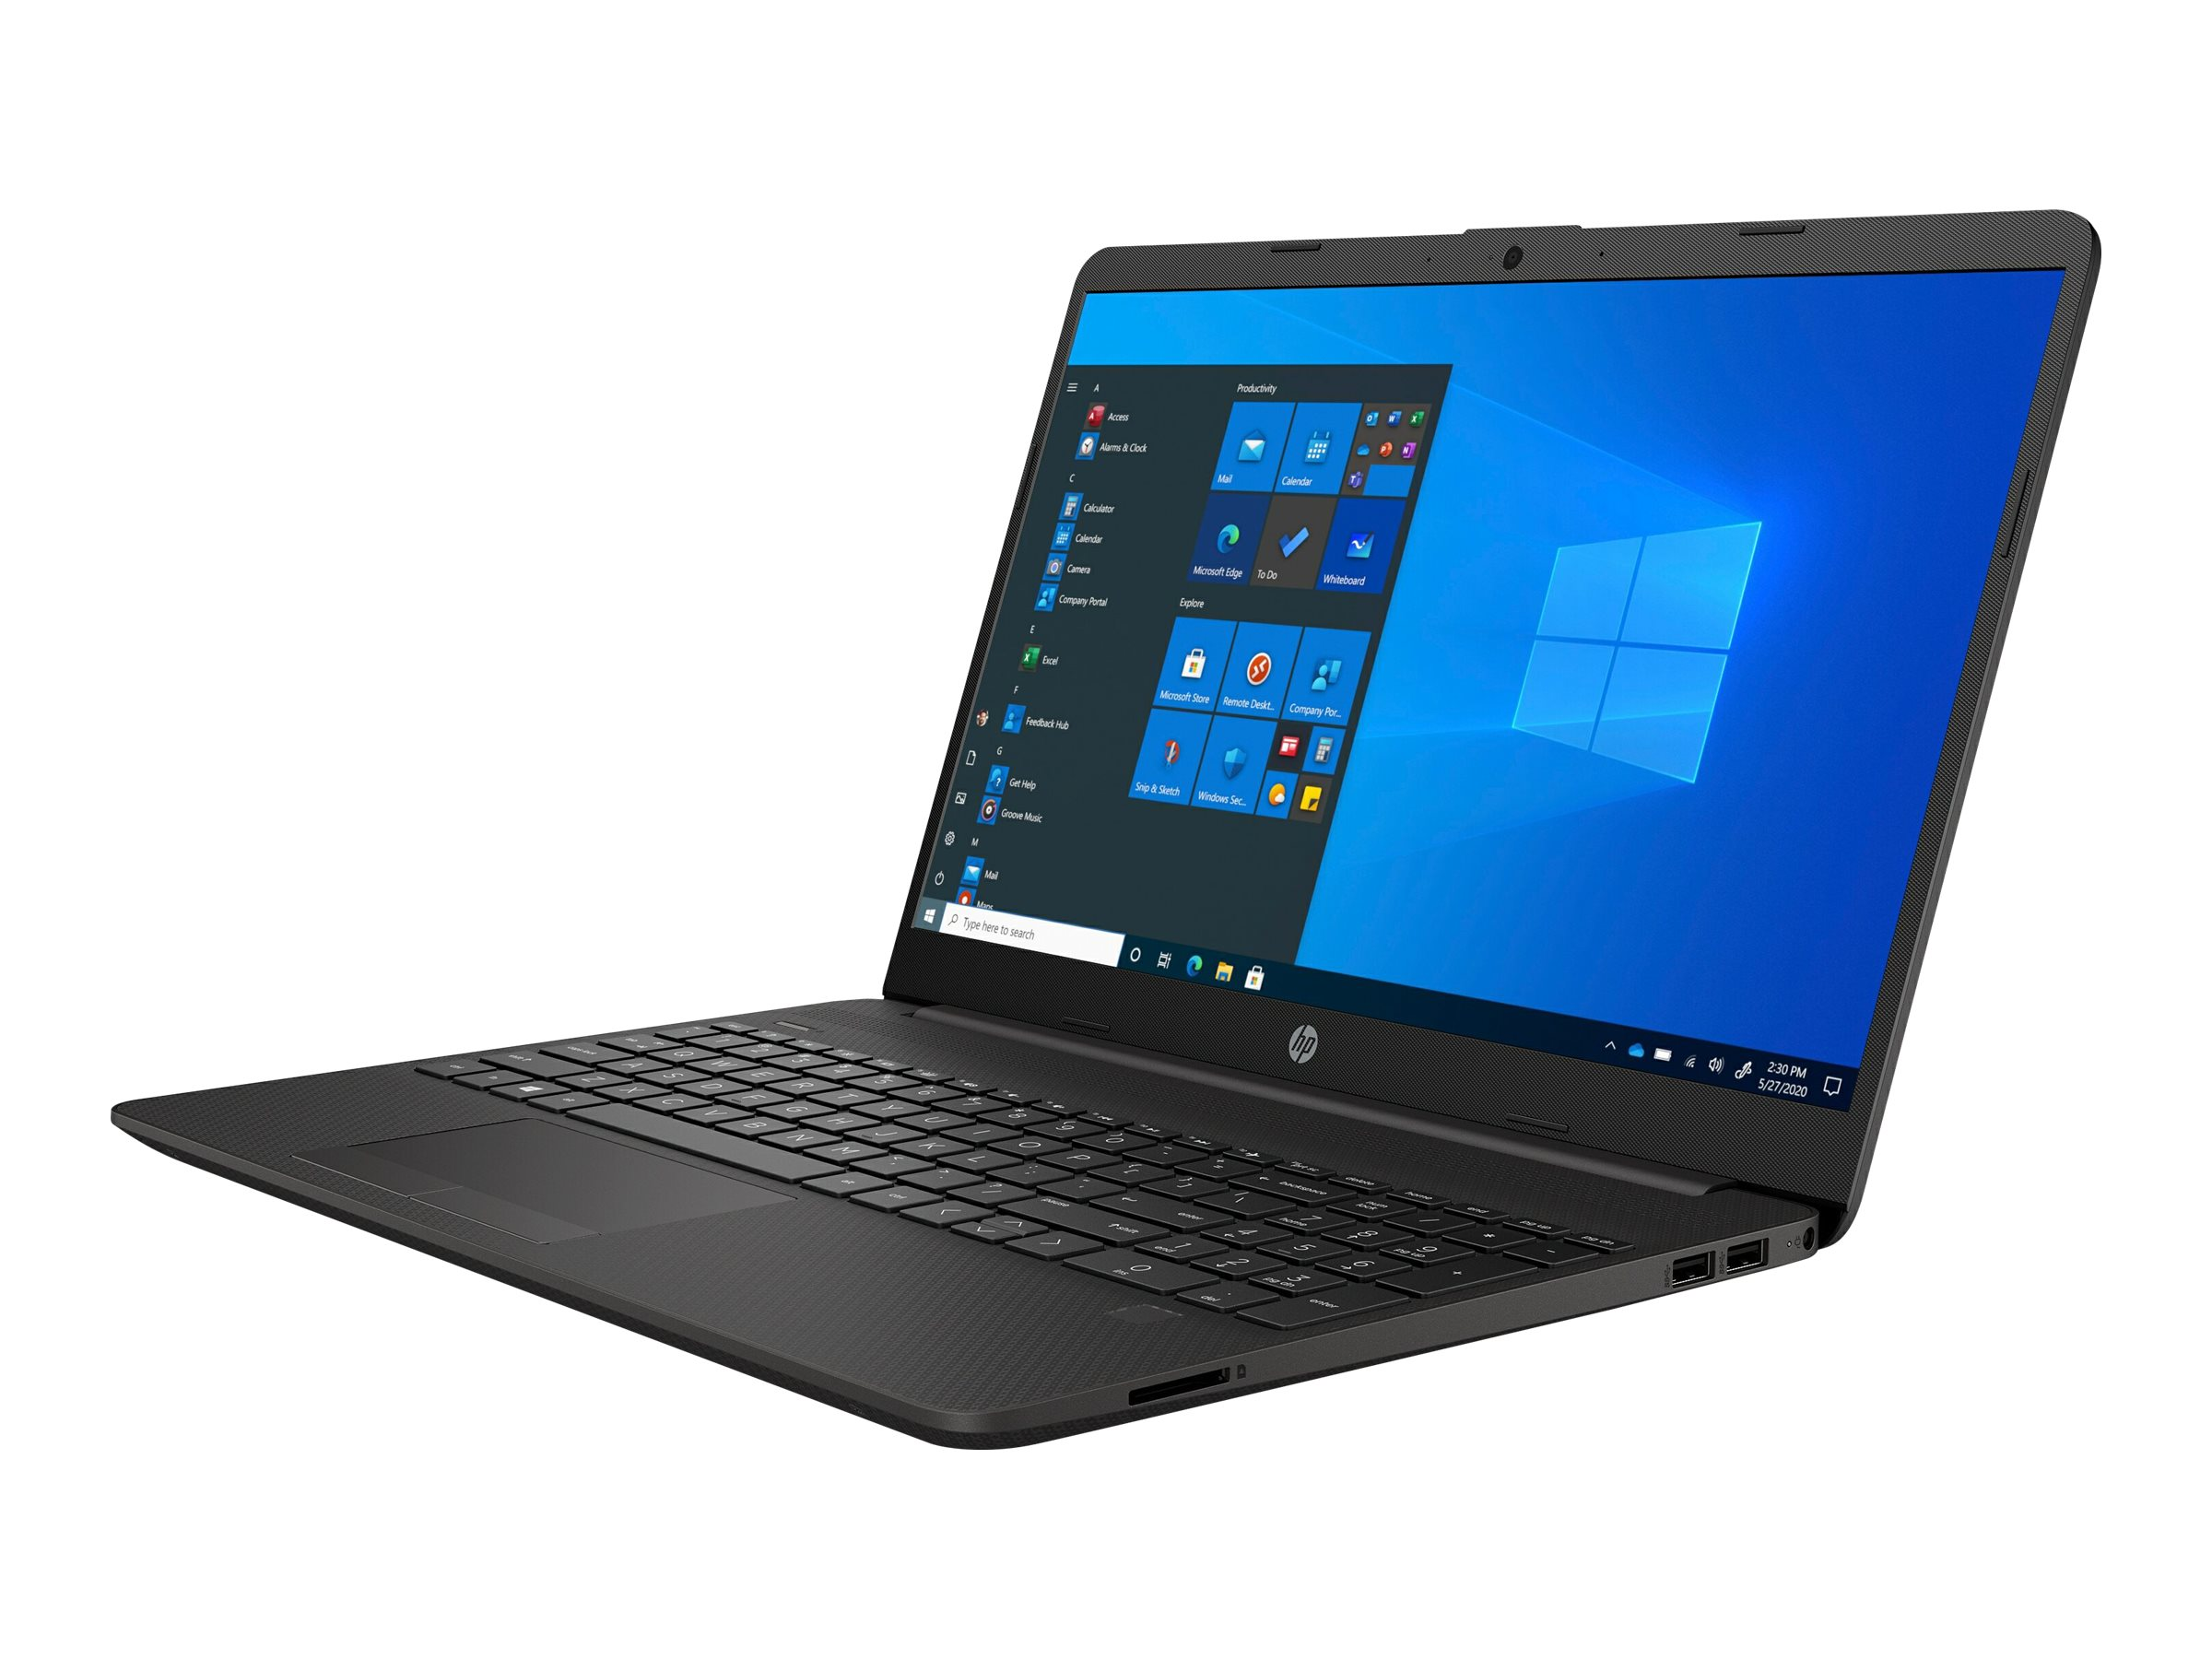 """HP 250 G8 - Core i3 1005G1 / 1.2 GHz - FreeDOS 3.0 - 8 GB RAM - 256 GB SSD NVMe, HP Value - 39.6 cm (15.6"""")"""